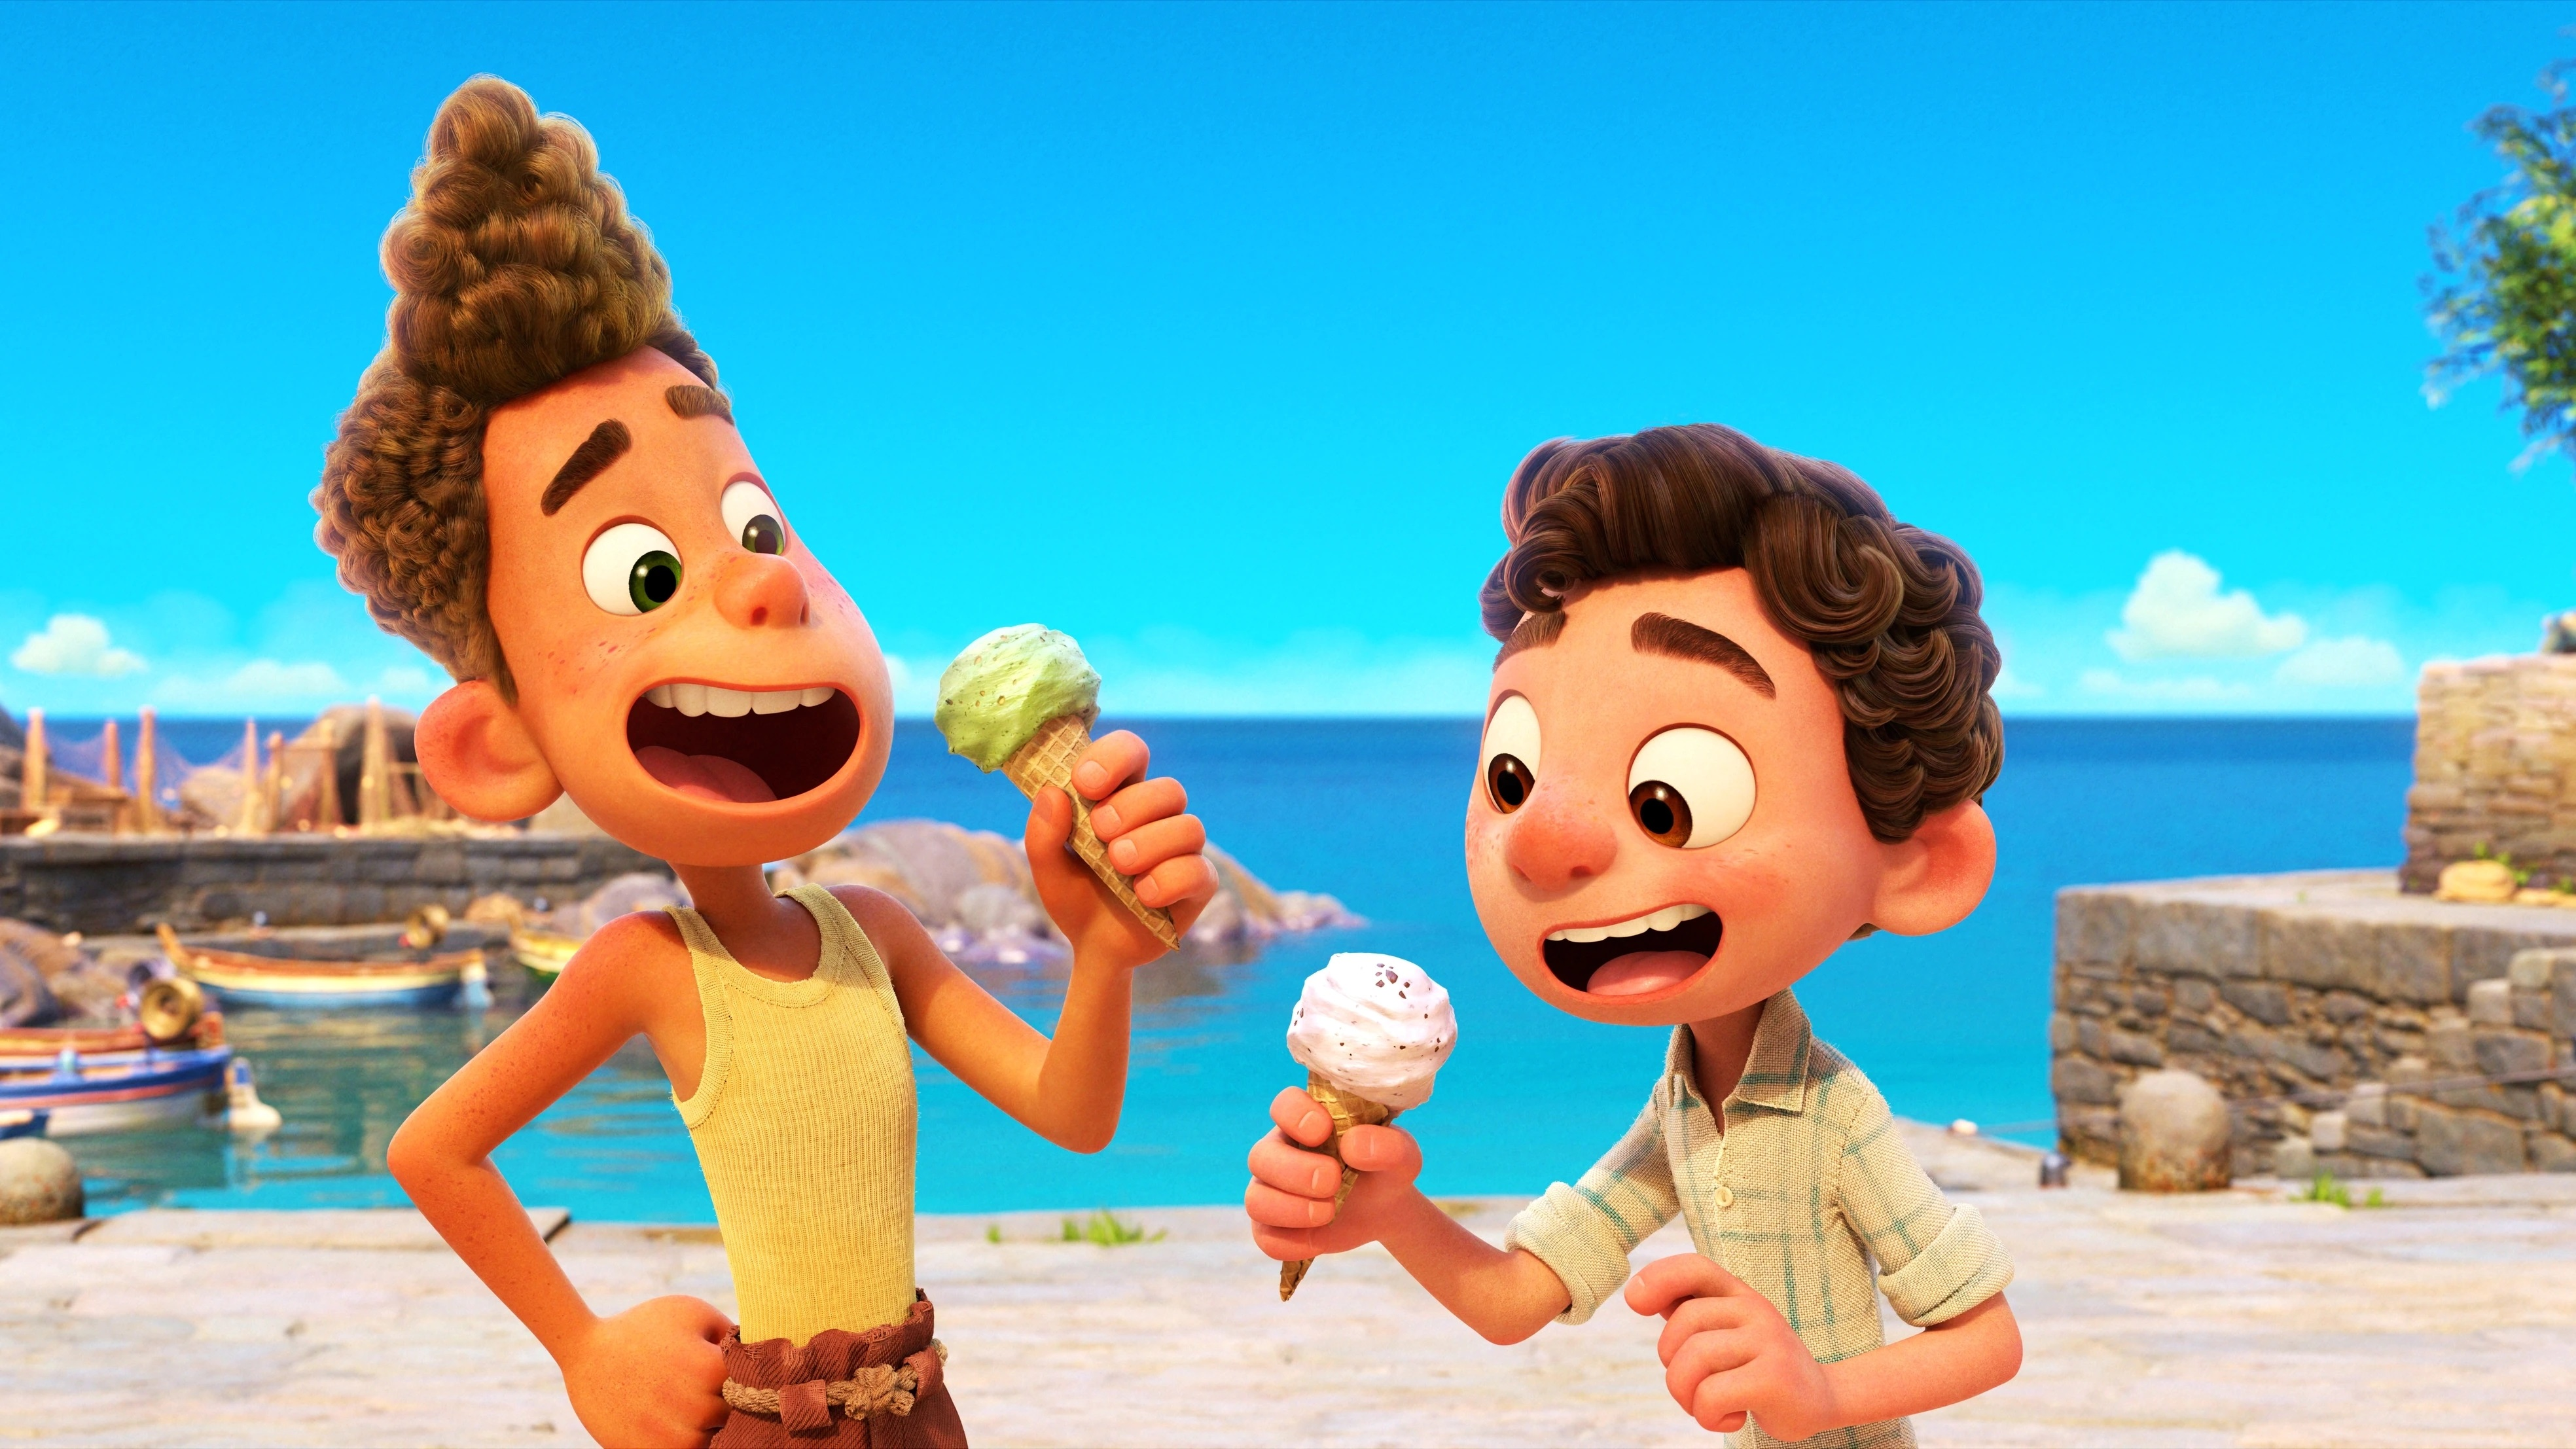 Disney Pixar's LUCA, an animated film about two boy sea monsters